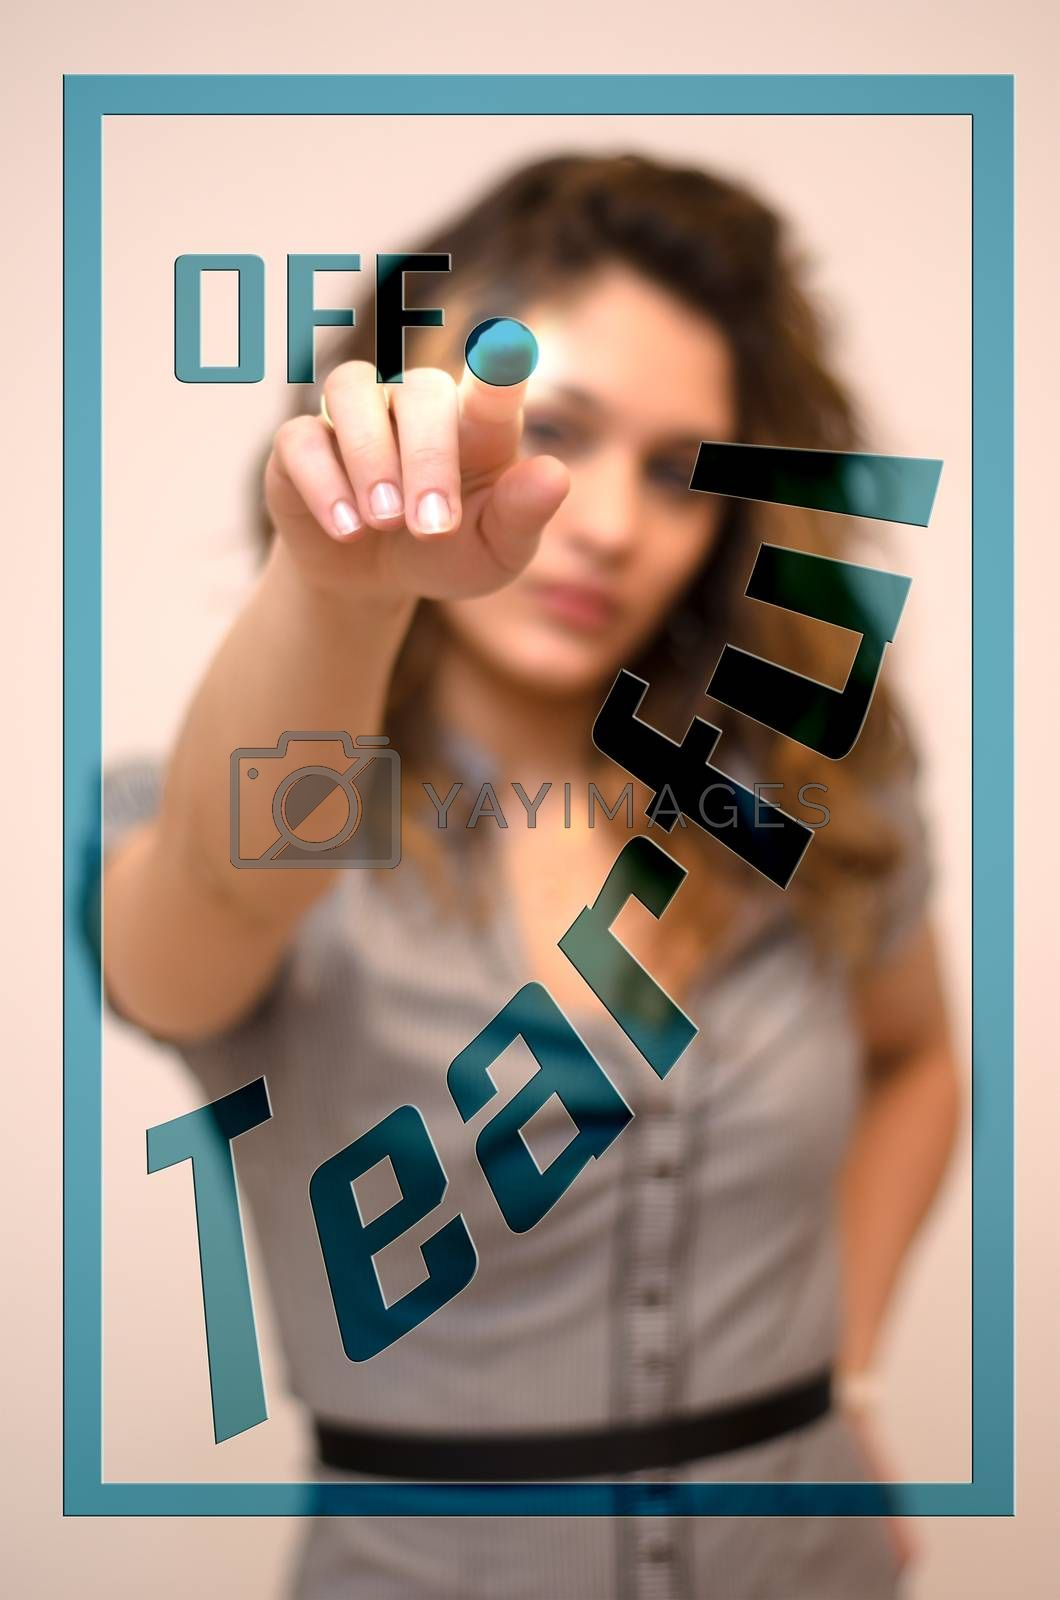 Royalty free image of woman switching off Tearful on digital interace by vepar5